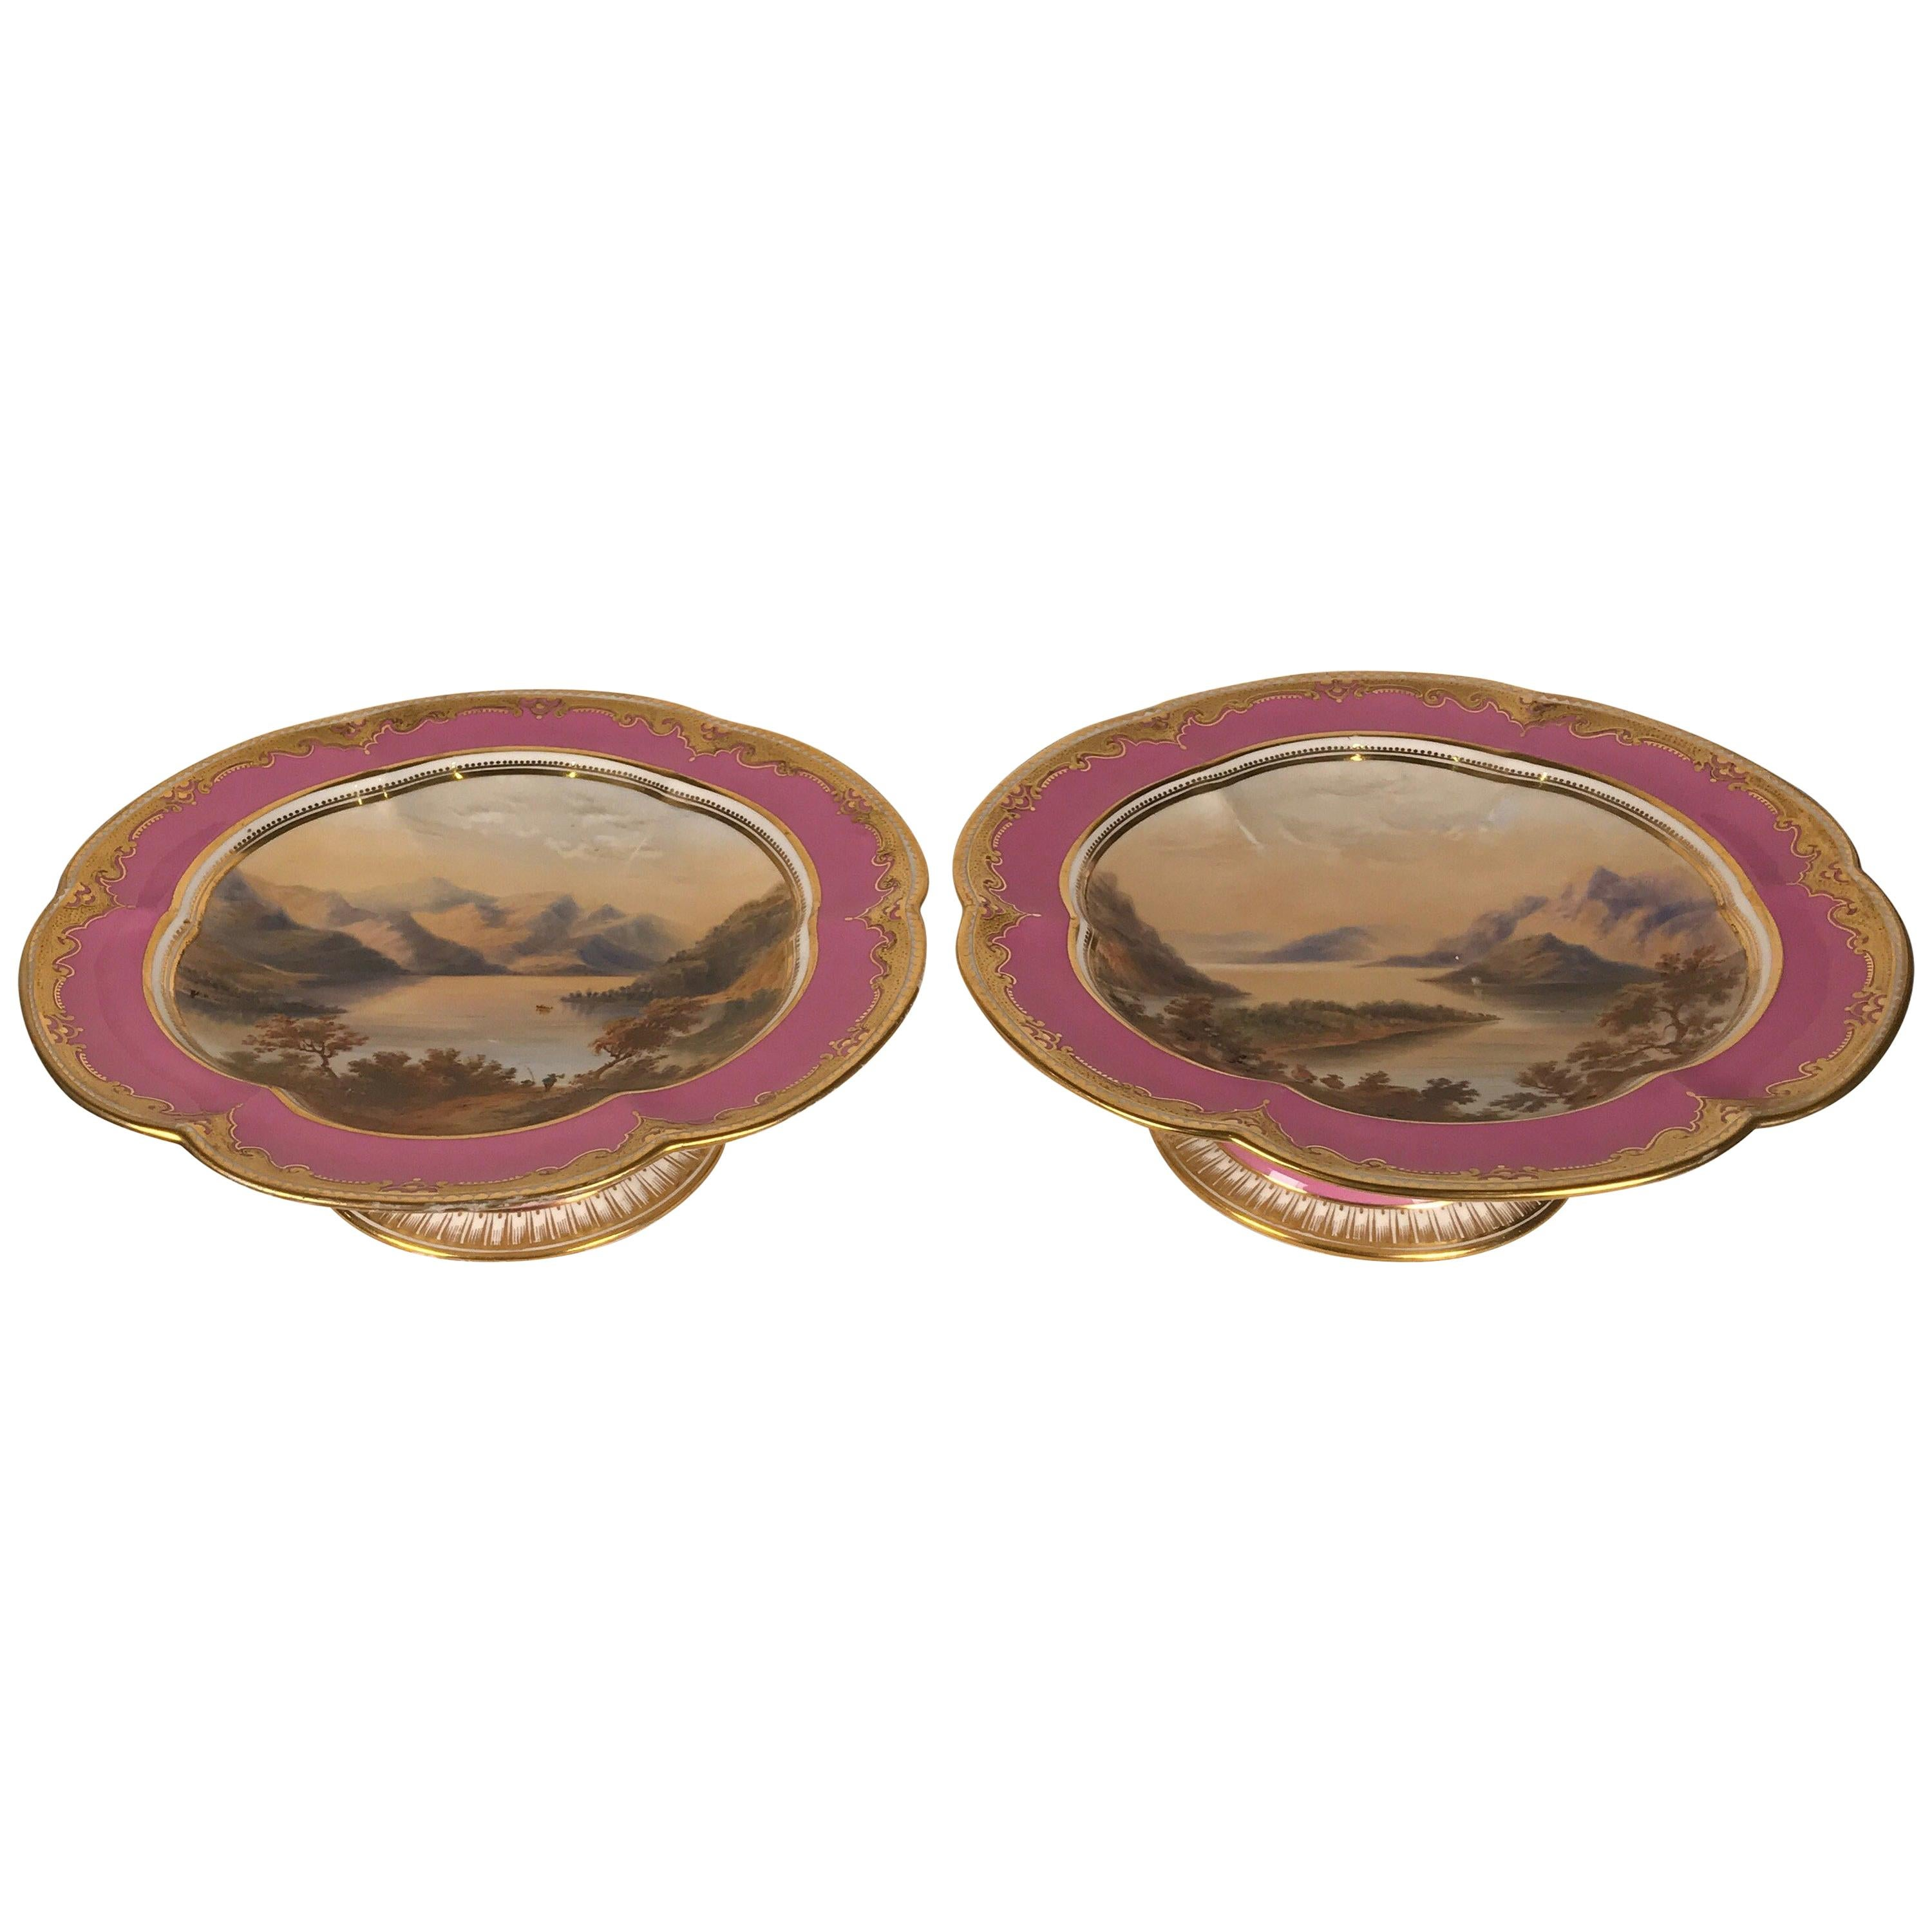 Pair of 19th Century Antique English Hand Painted Porcelain Compotes